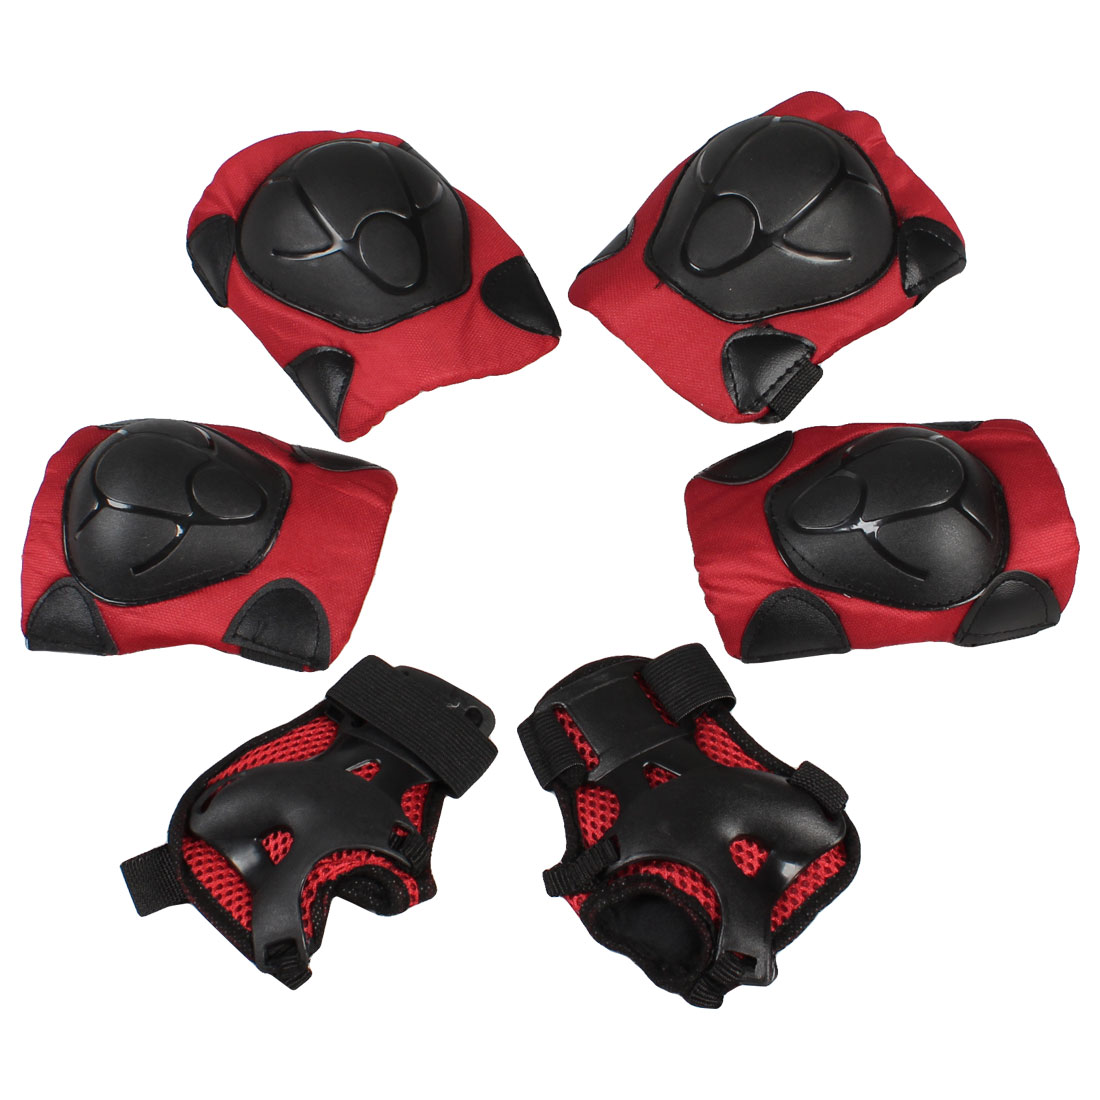 6Pcs Skateboarding Skating Wrist Guard Elbow Pads Knee Pads Safety Gear Set for Kids by